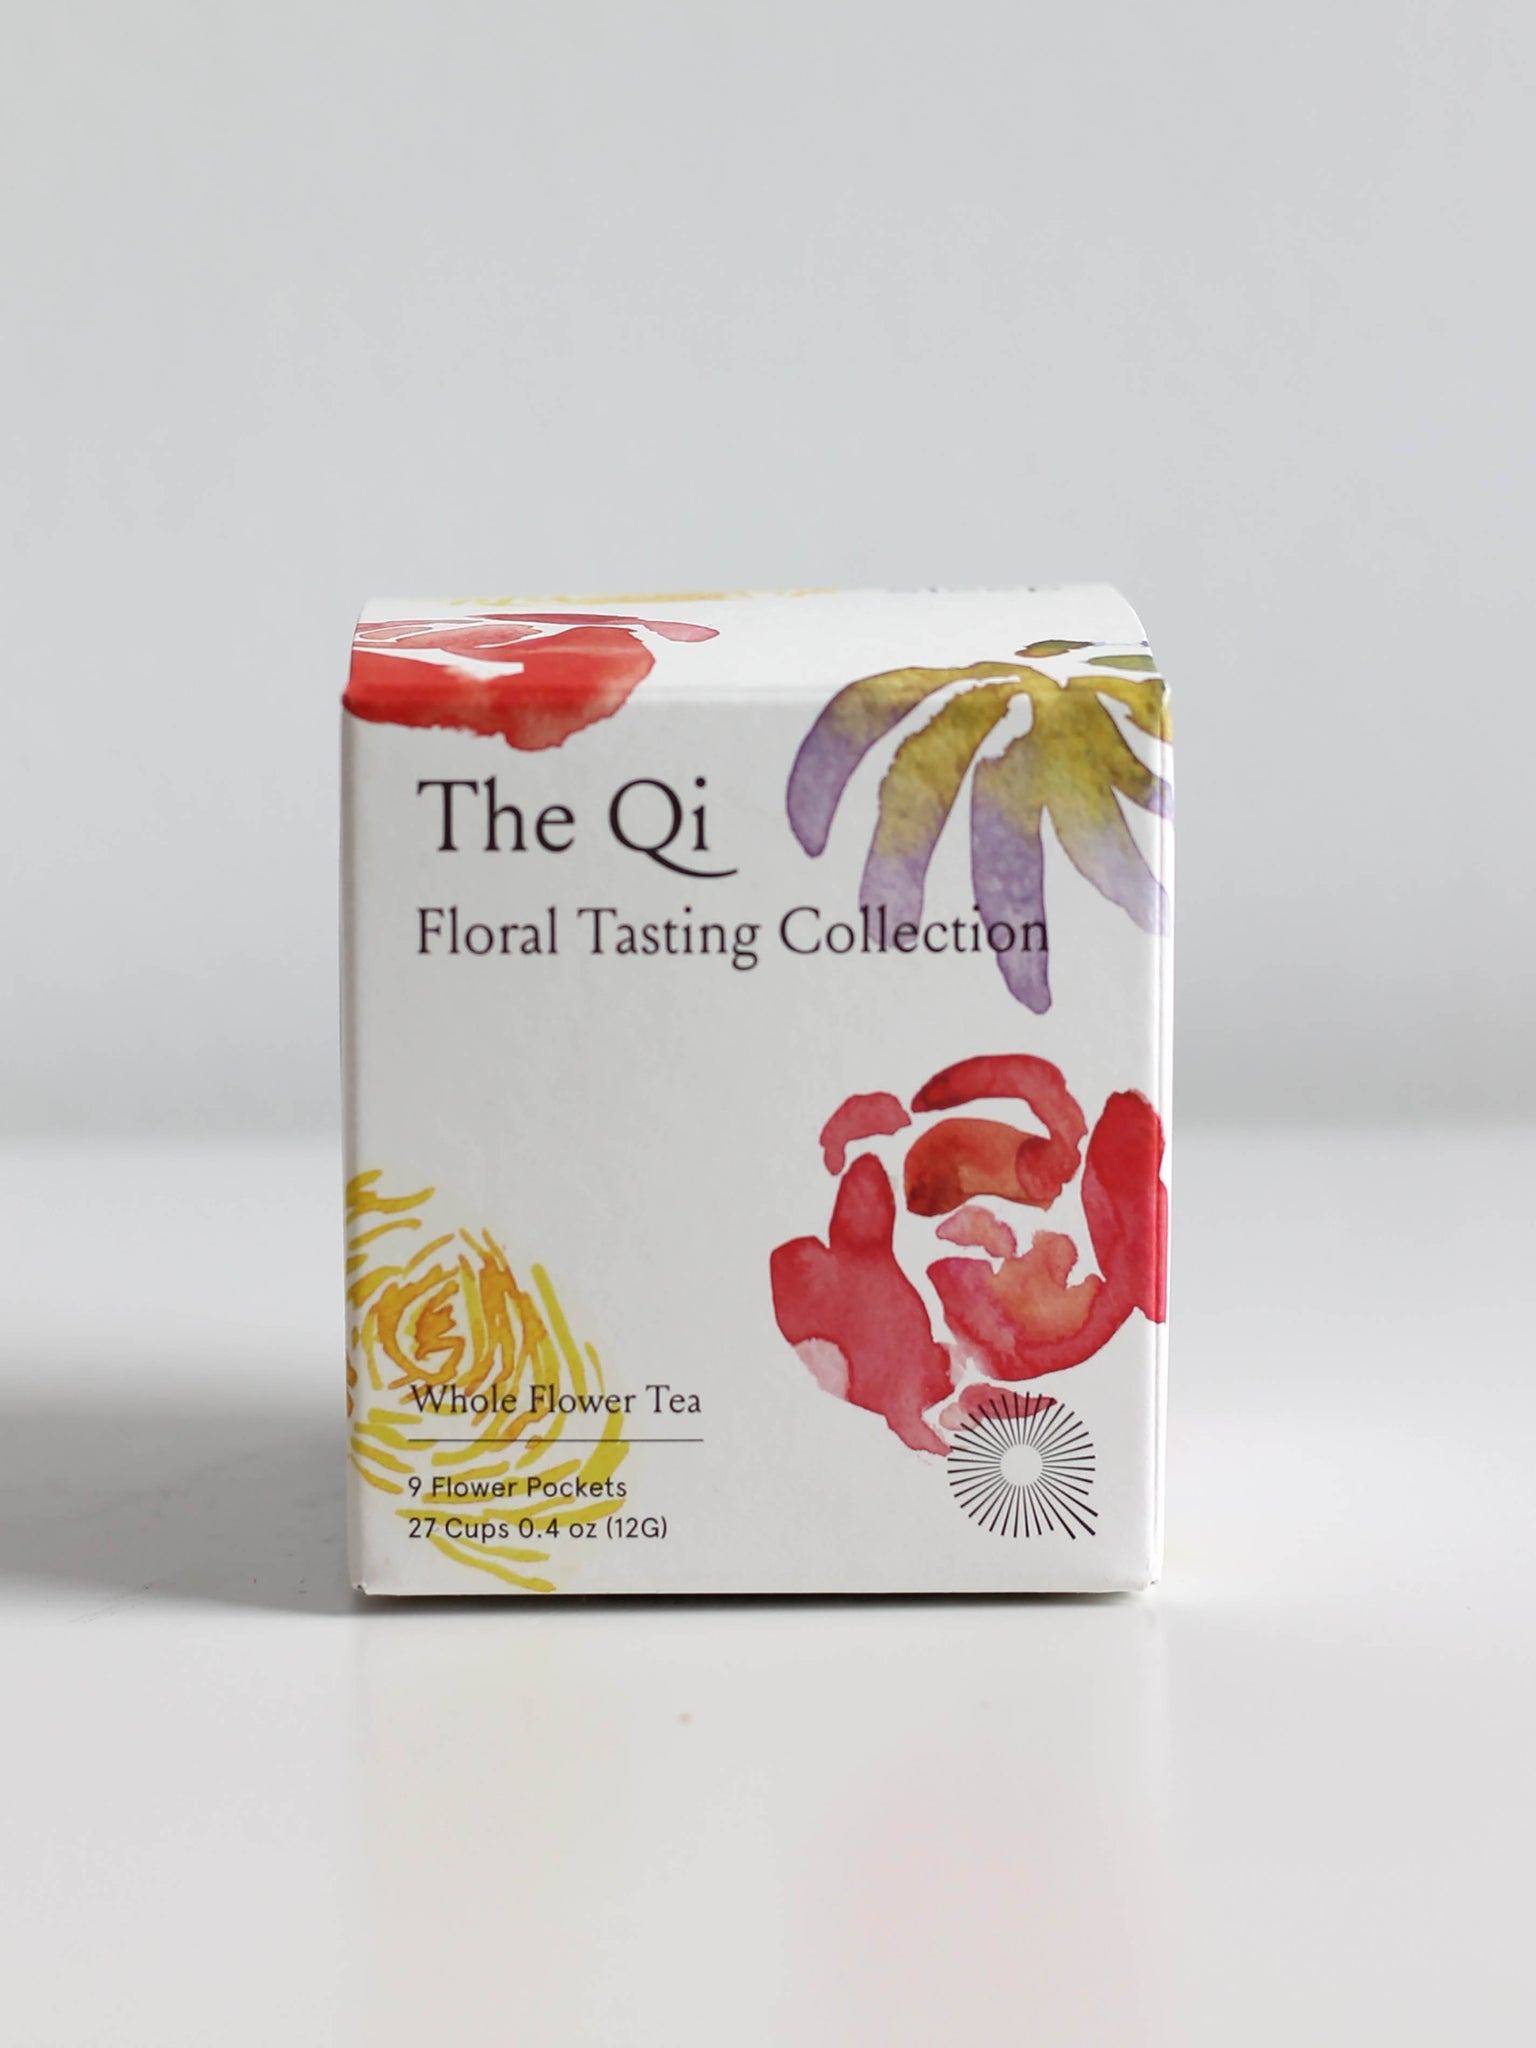 THE QI FLORAL TASTING COLLECTION TEAS